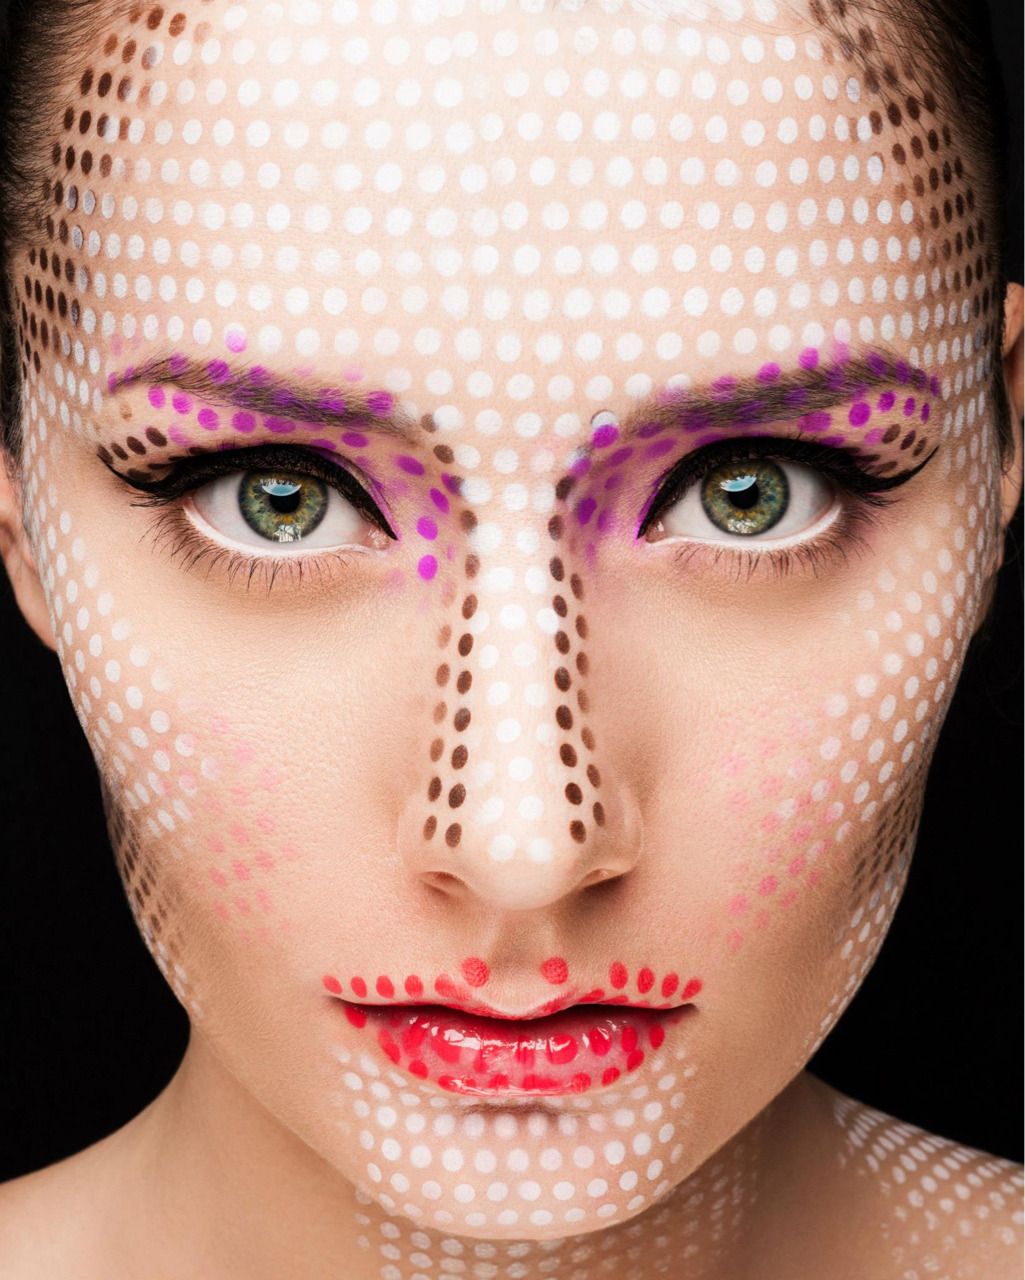 Liechtenstein inspired!  Makeup - Myself (Shonagh Scott - ShowMe MakeUp) Photographer - Martin Higgs (martinhiggs.tumblr.com) Model - Alice Christian Retoucher - Stefka Pavlova  To do this look I created a stencil out of acetate. I based my colours on makeup shades you would apply to the contours of the face, such as highlight and contour shades, eyeshadow, lipstick etc. Then using my airbrush after applying the foundation base, I sprayed on the colours!